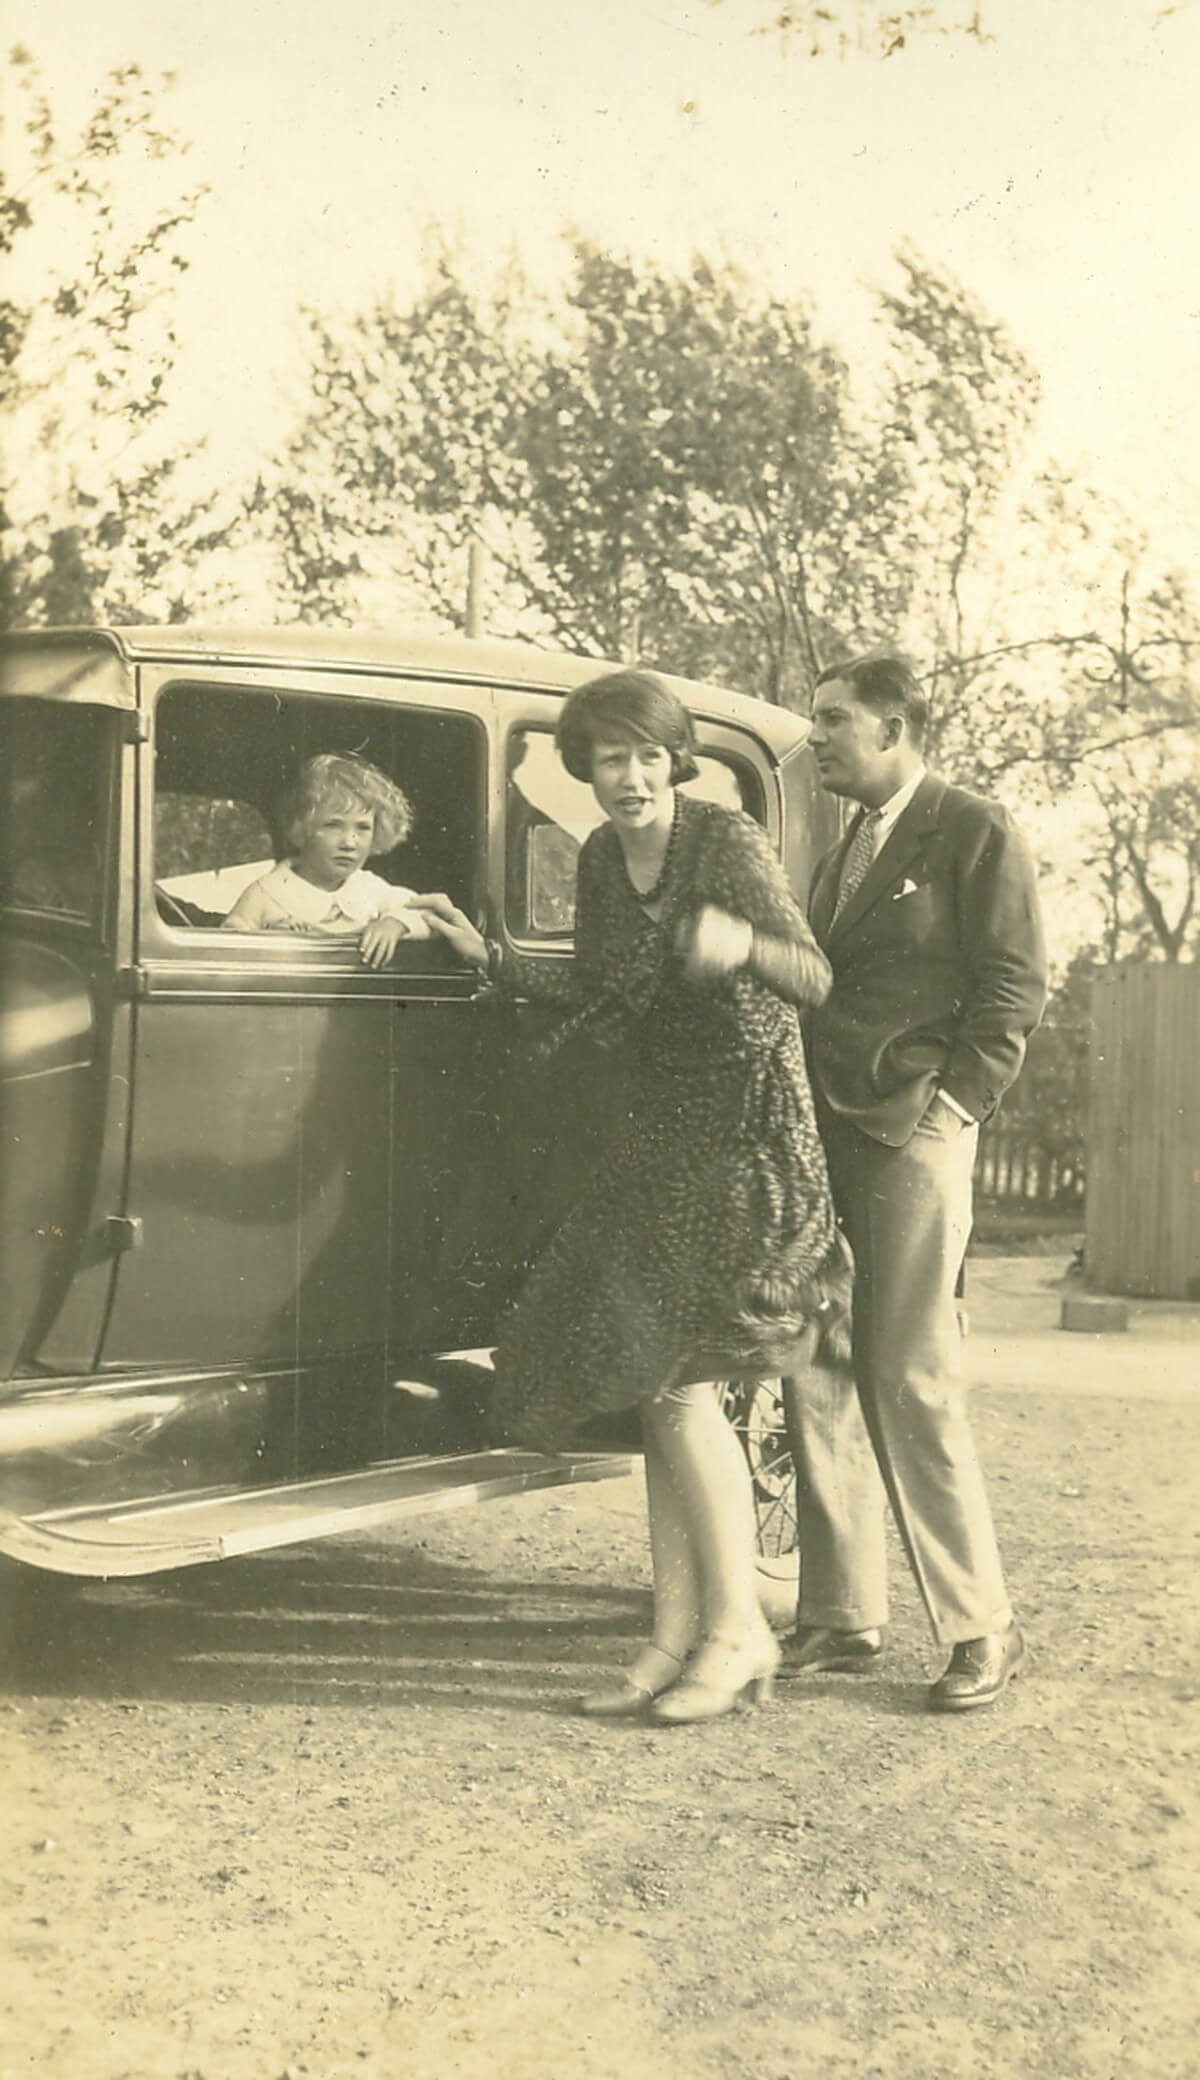 Guy, Catherine and Anne Newmarch in happier times c. 1931 in Tianjin